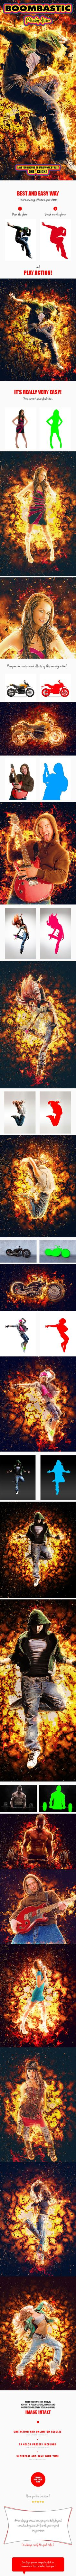 Boombastic Photoshop Action - Photo Effects Actions. Download here: https://graphicriver.net/item/boombastic-photoshop-action/17002068?s_rank=54&ref=yinkira